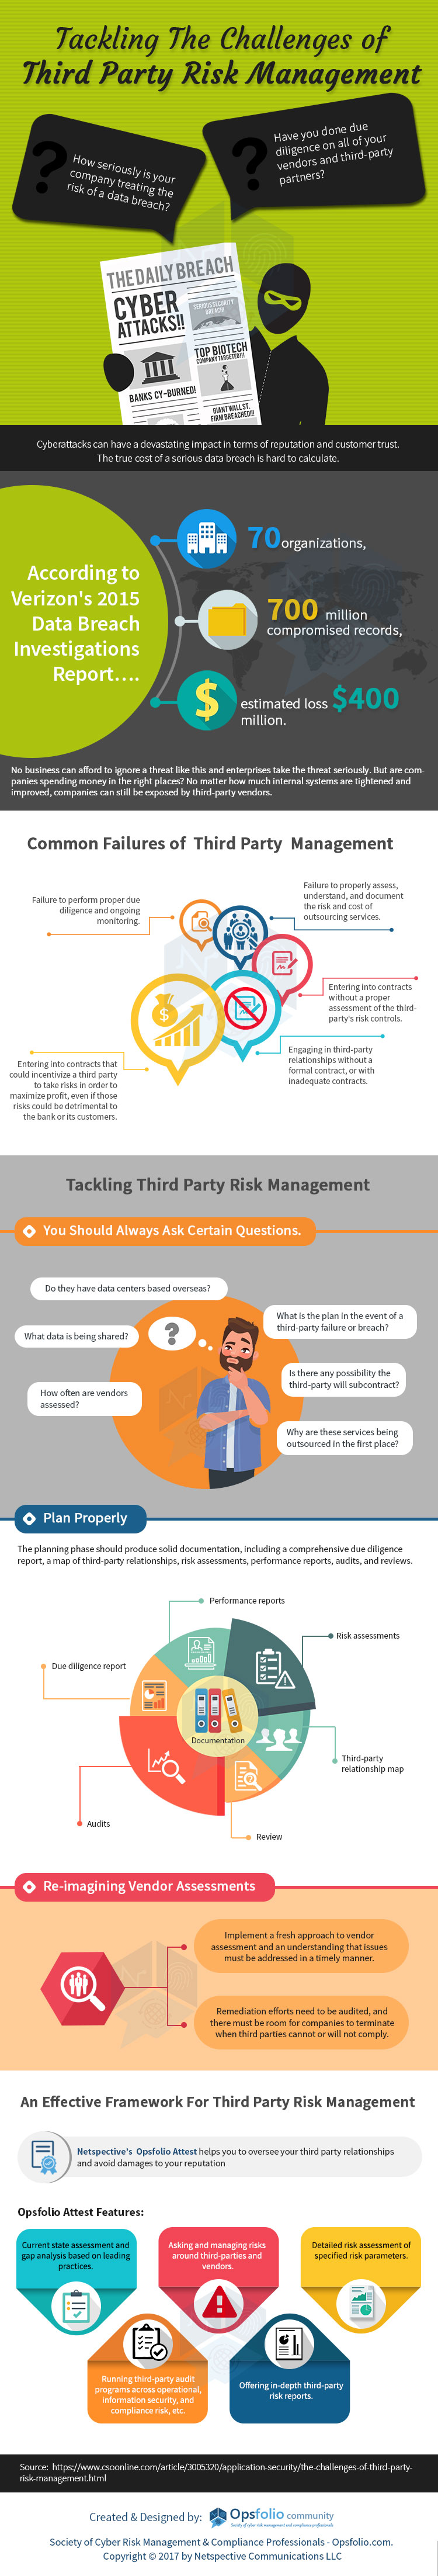 Third Party Risk Management Challenges